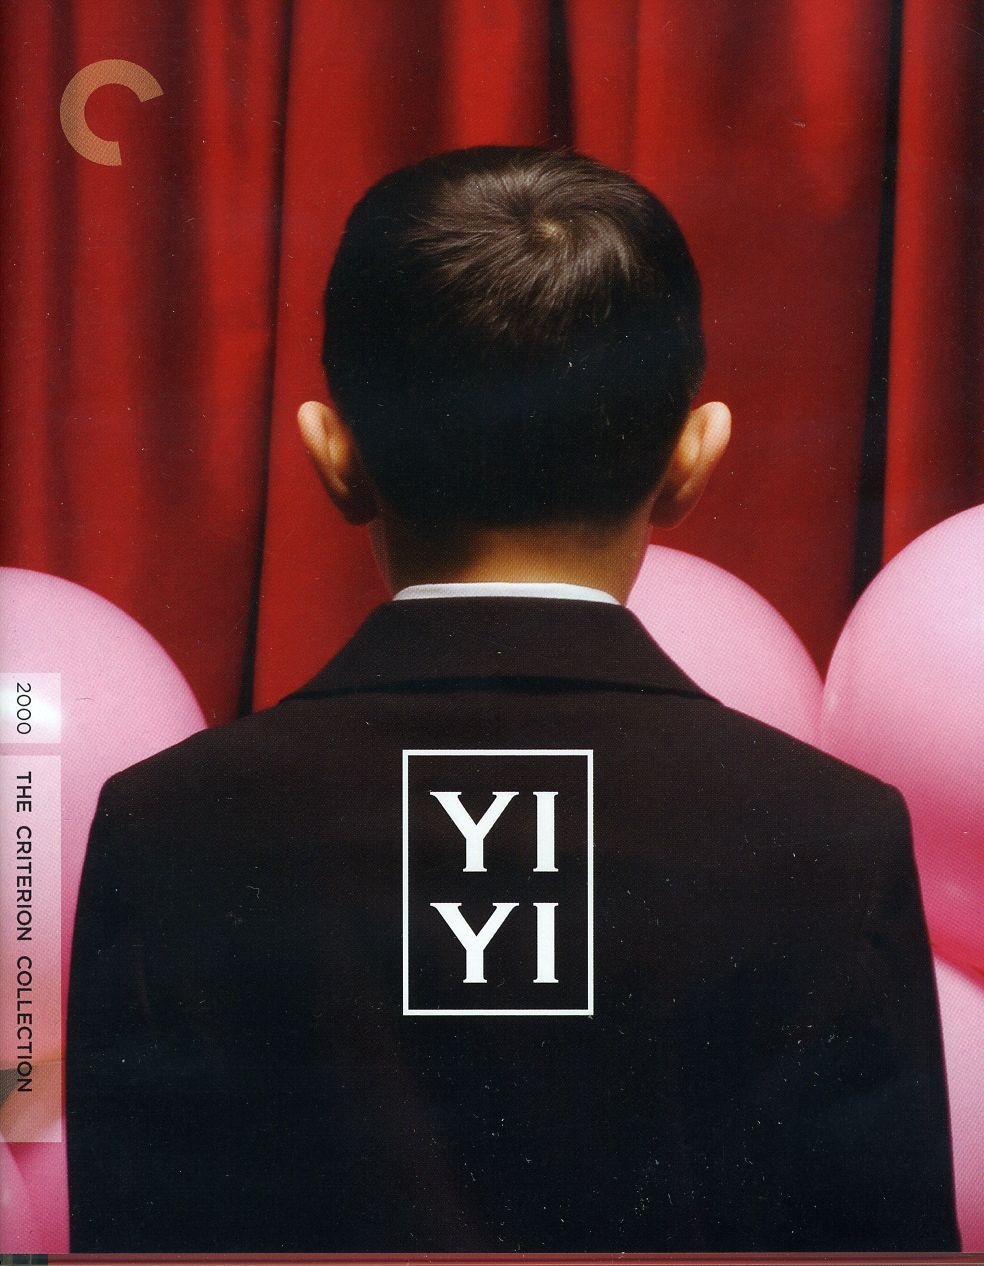 Yi Yi By Edward Yang The Criterion Collection Melhores Filmes